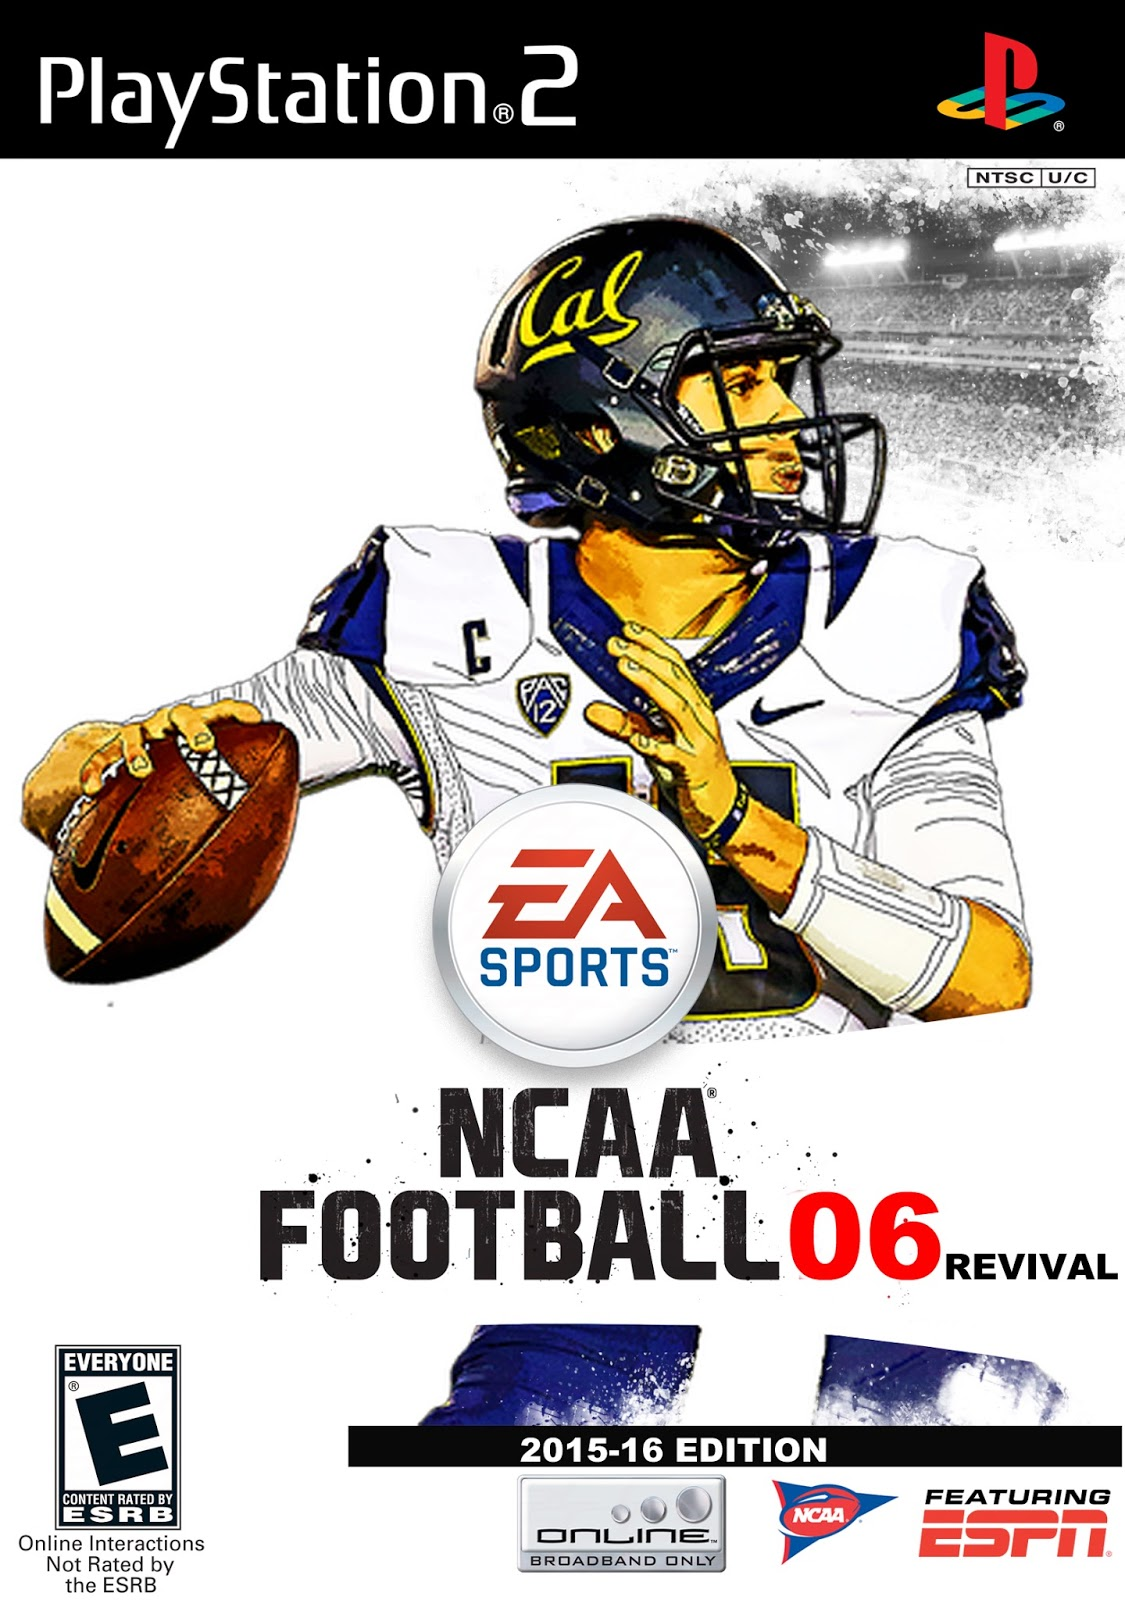 Ncaa Football 06 Revival Ps2 Cover Antdroid